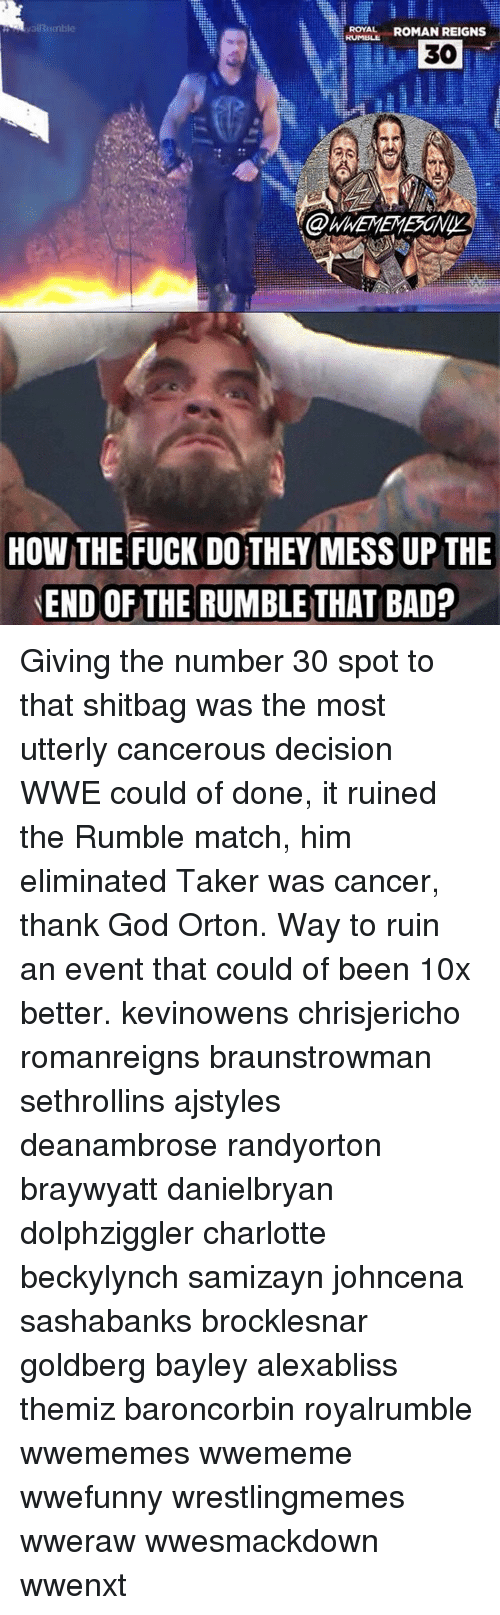 Memes, Roman Reigns, and Charlotte: ya Rumble  ROYAL  ROMAN REIGNS  30  HOW THE FUCK DO THEY MESS UP THE  END OF THE RUMBLE THAT BAD? Giving the number 30 spot to that shitbag was the most utterly cancerous decision WWE could of done, it ruined the Rumble match, him eliminated Taker was cancer, thank God Orton. Way to ruin an event that could of been 10x better. kevinowens chrisjericho romanreigns braunstrowman sethrollins ajstyles deanambrose randyorton braywyatt danielbryan dolphziggler charlotte beckylynch samizayn johncena sashabanks brocklesnar goldberg bayley alexabliss themiz baroncorbin royalrumble wwememes wwememe wwefunny wrestlingmemes wweraw wwesmackdown wwenxt